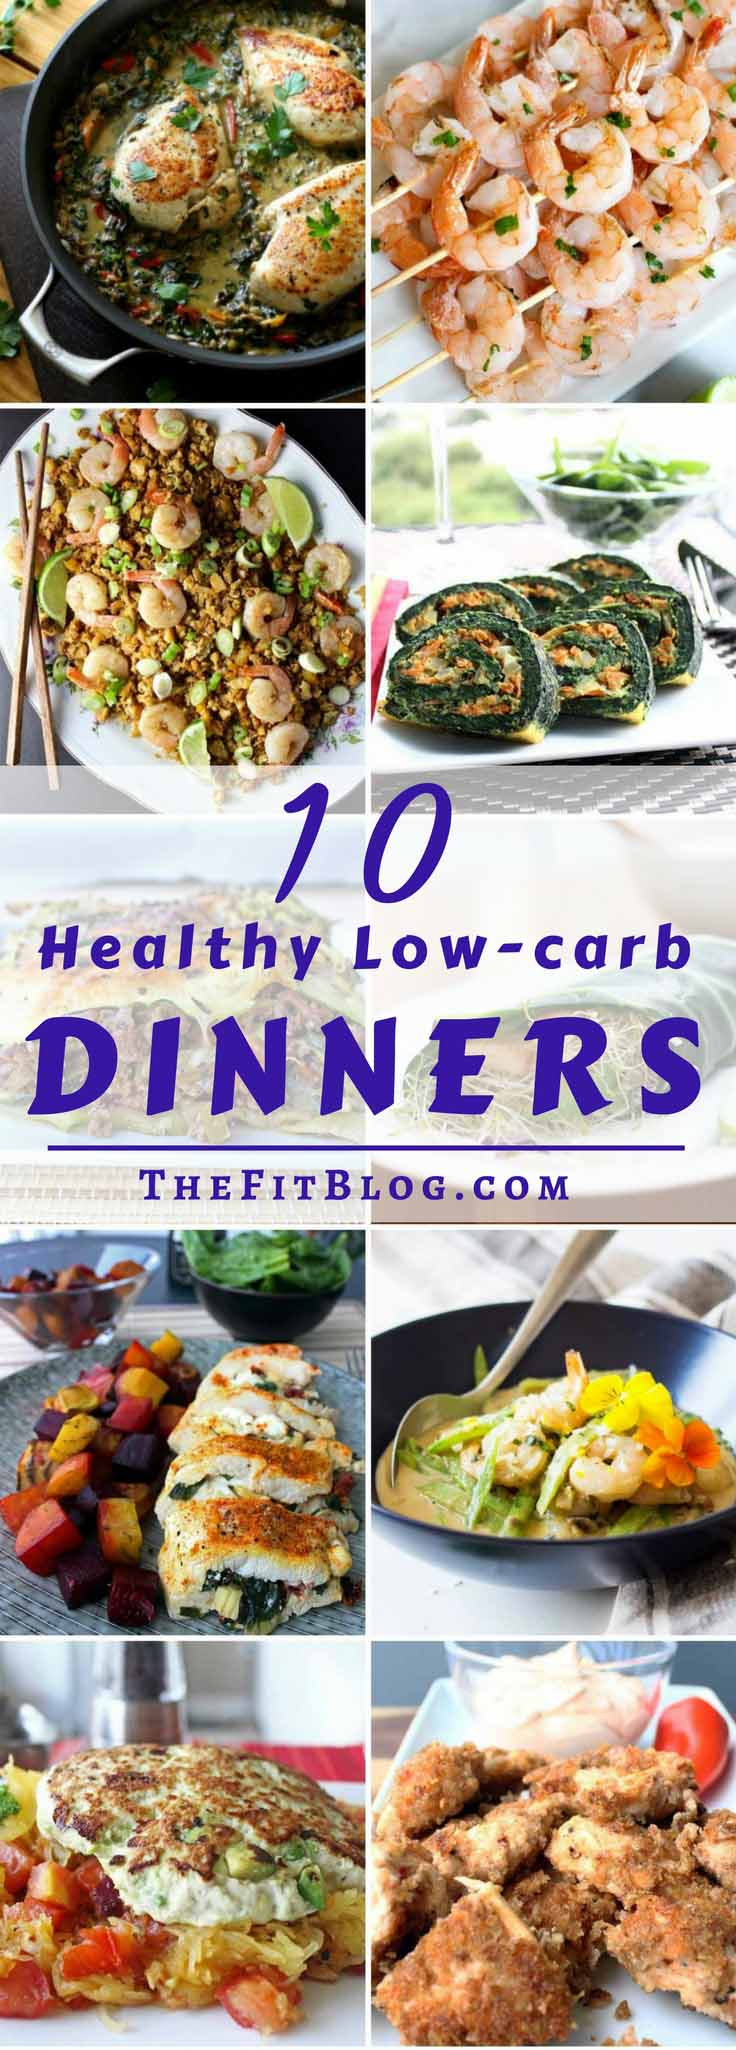 10 Healthy Low-Carb Dinner Recipes – My favorite diabetes friendly and easy dinner recipes. Everything from chicken to beef, fish, and shrimp.